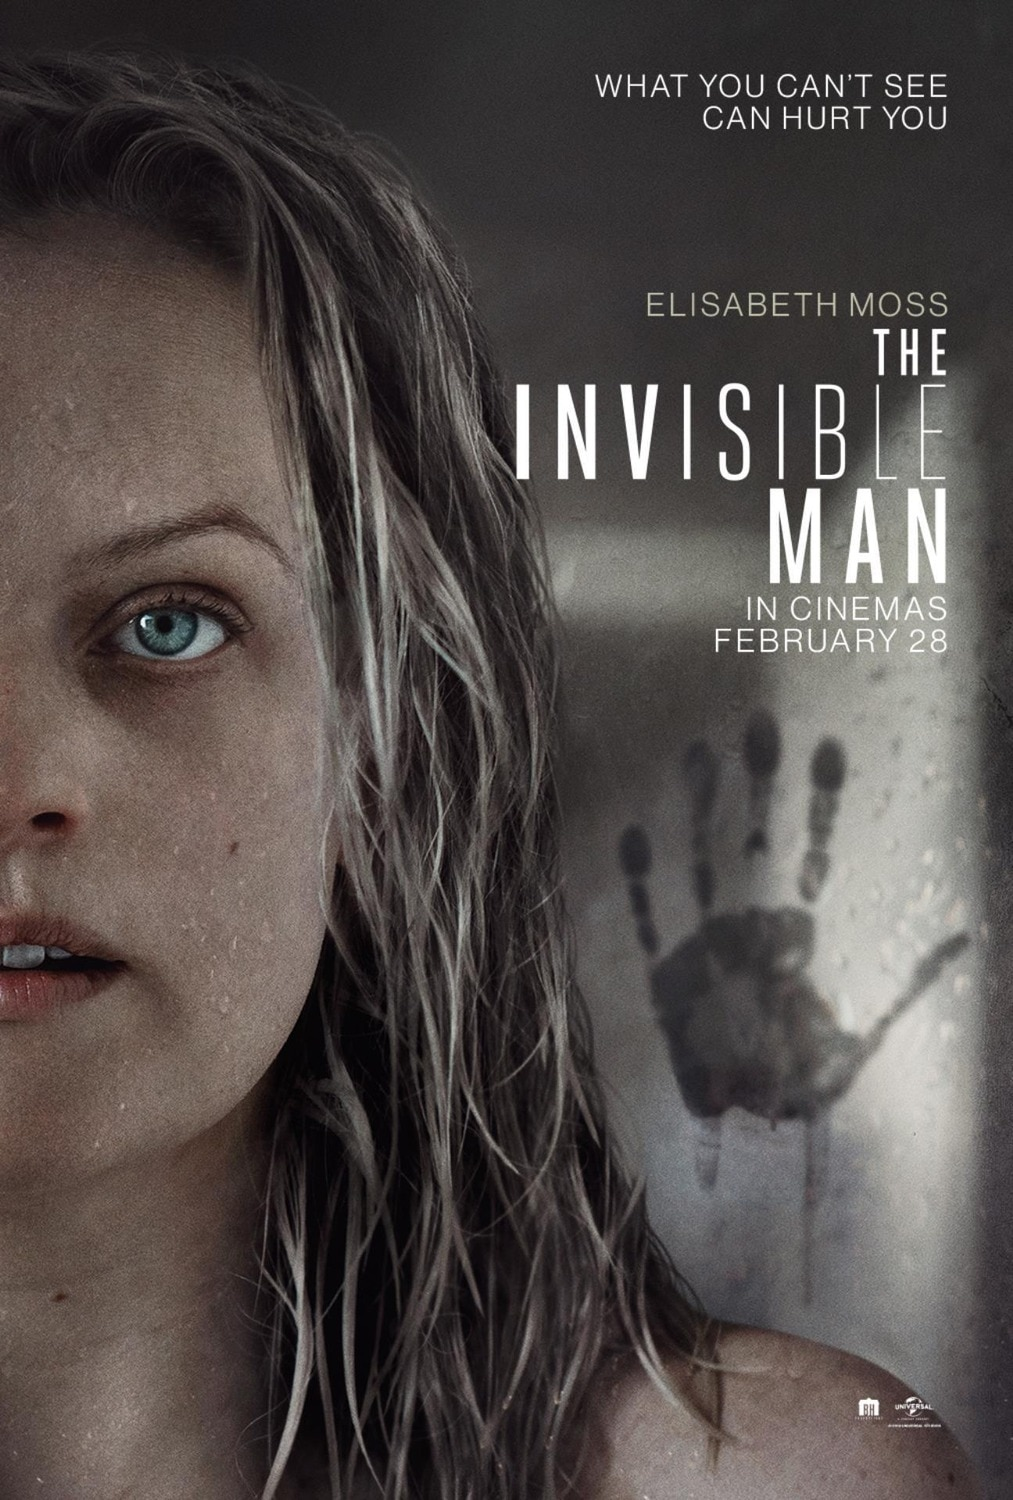 THE INVISIBLE MAN Poster 2 - THE INVISIBLE MAN 90% Fresh on Rotten Tomatoes